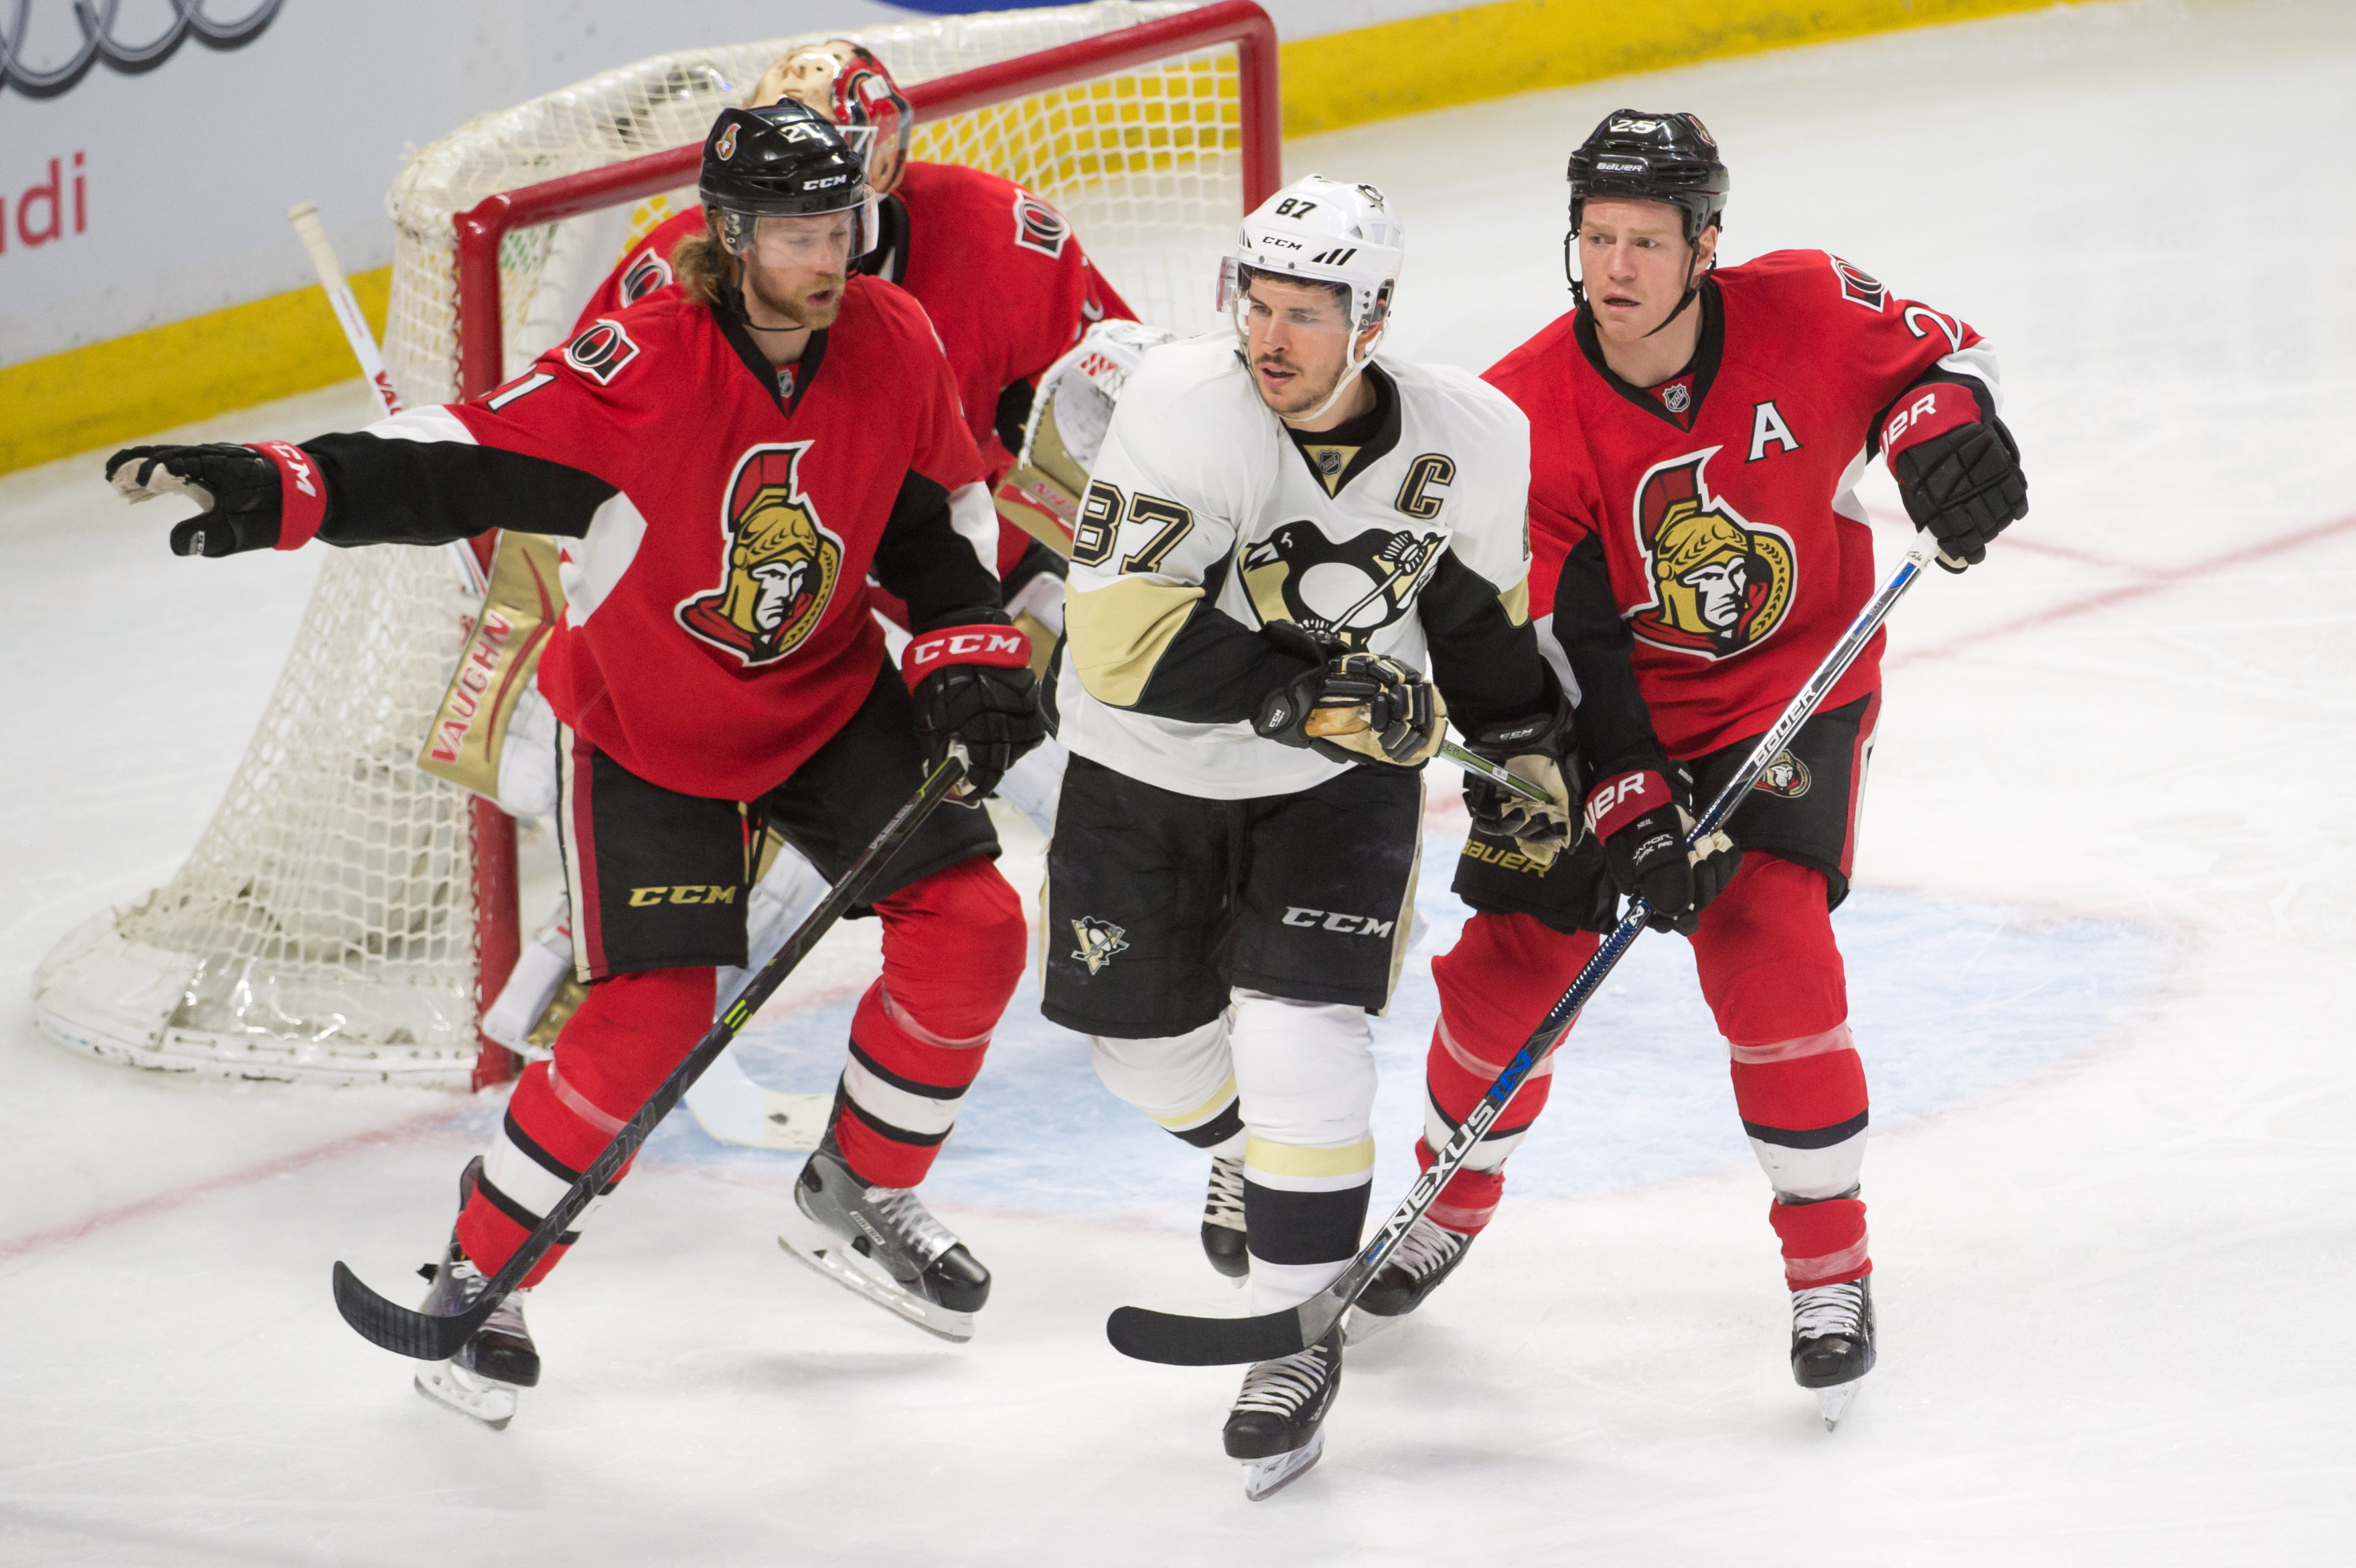 The more I stare at Kostka's arm, the stranger it looks